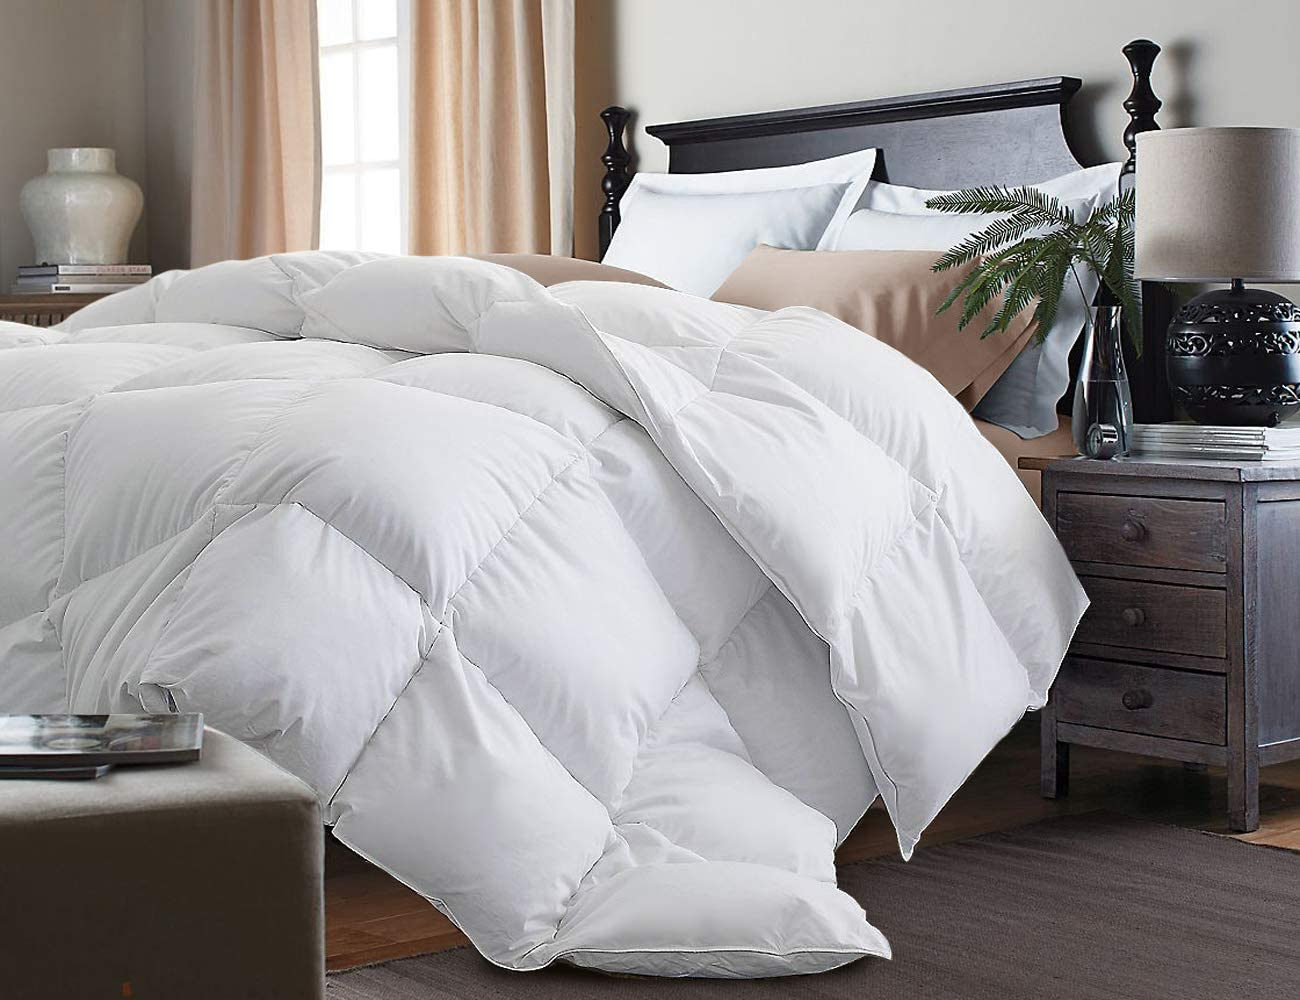 Kathy Ireland White Feather Goose Down Comforter-All Season Warmth, King